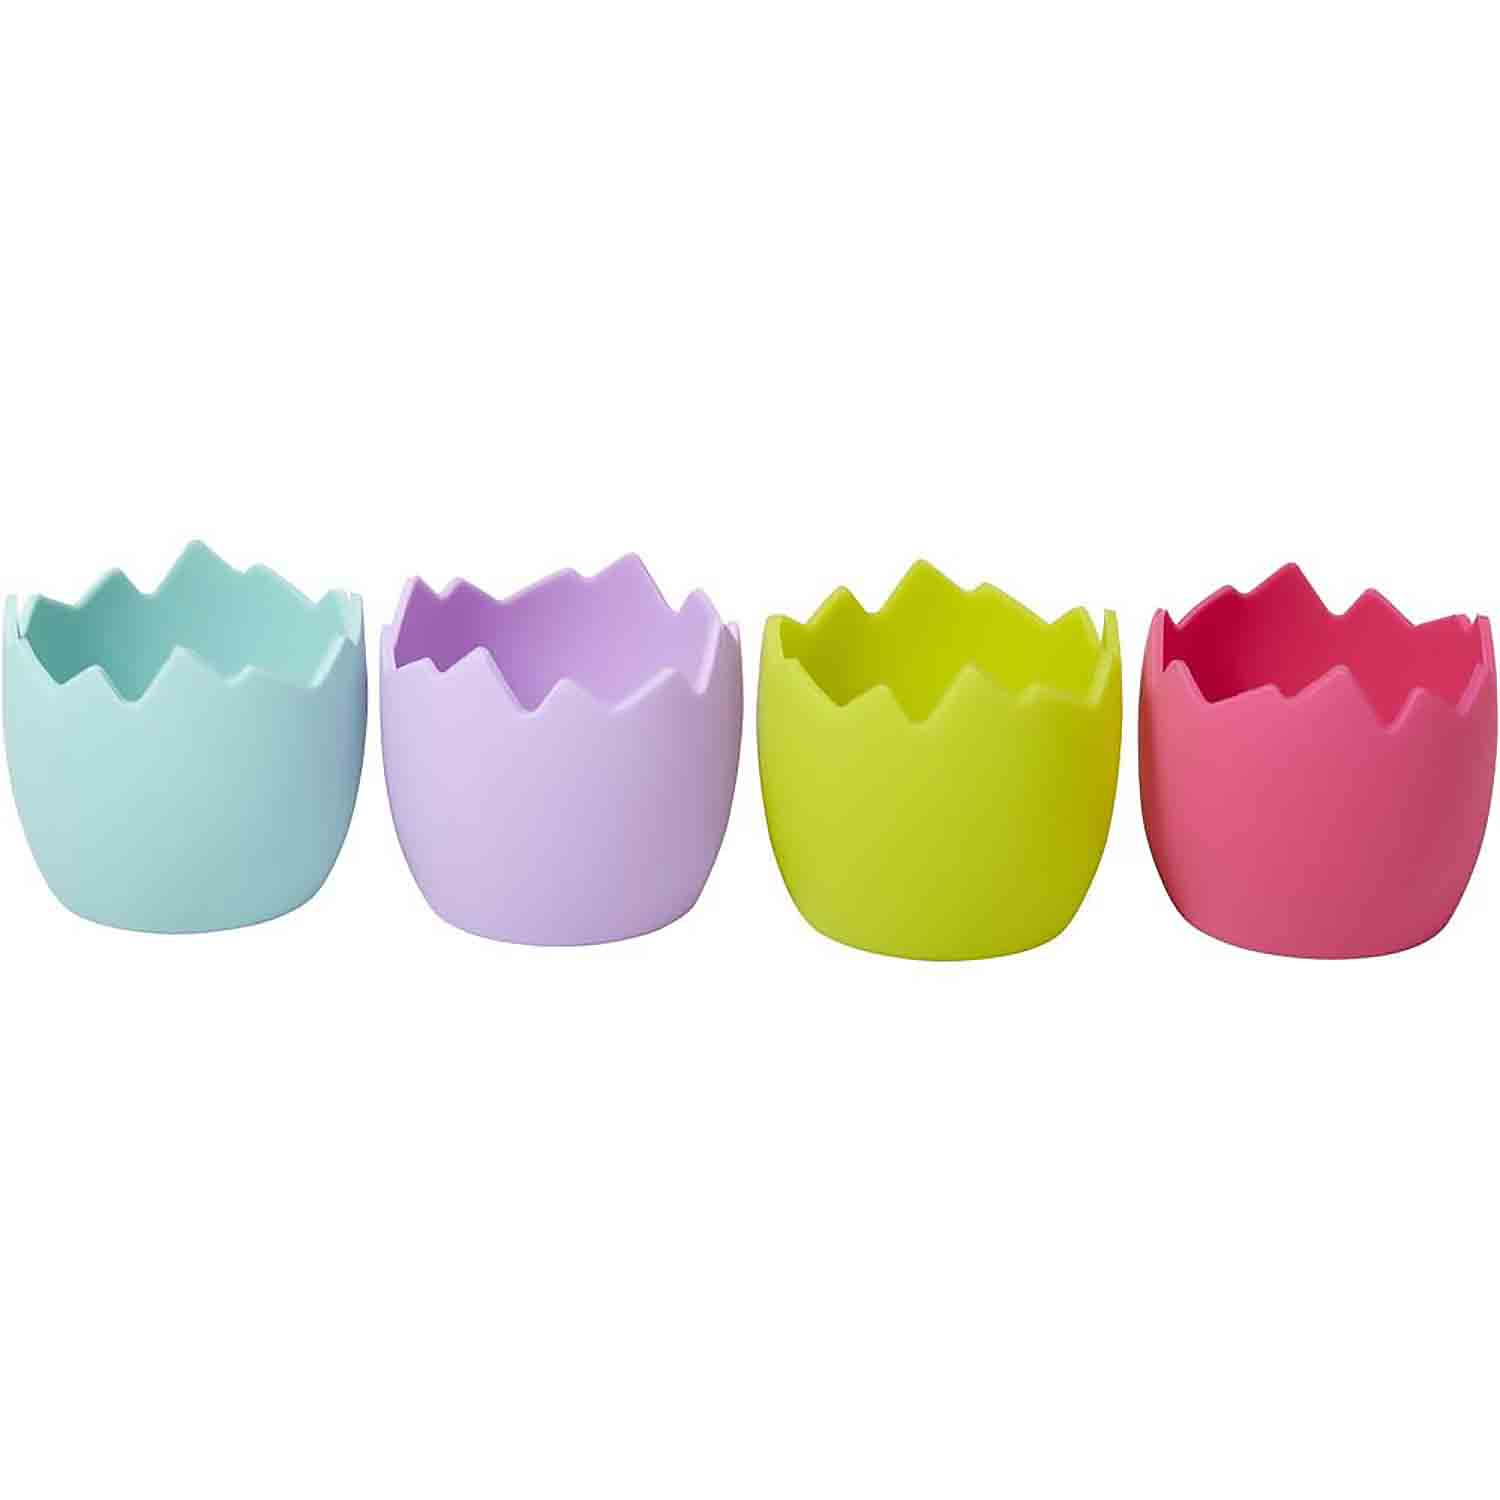 Broken Egg Jumbo Treat Cups